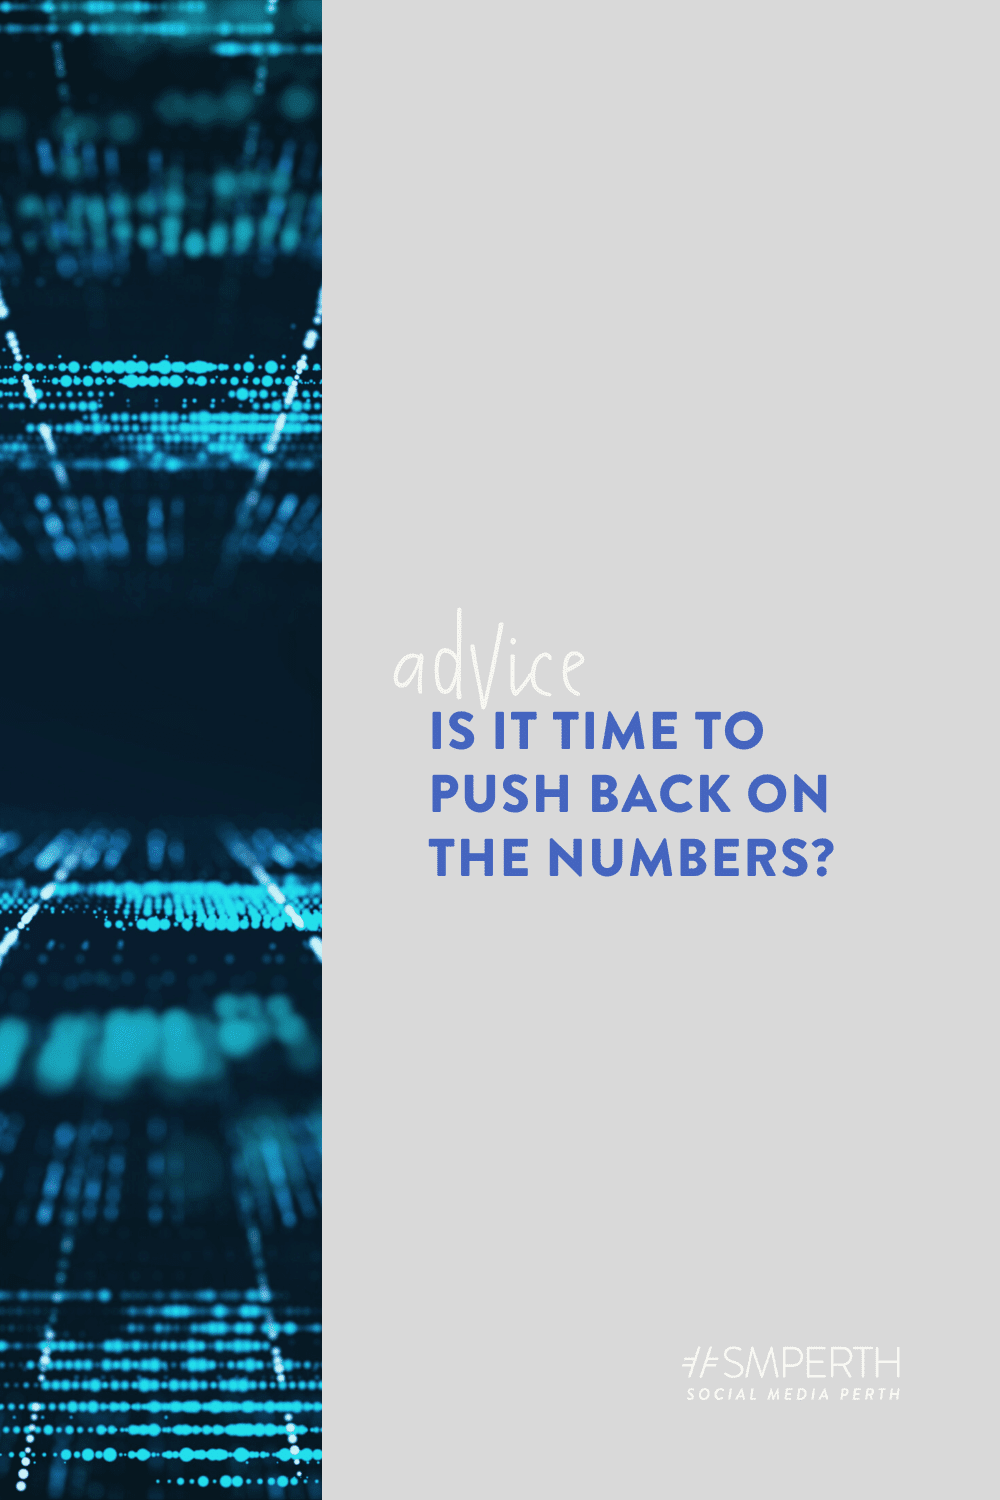 Is it time to push back on the numbers?